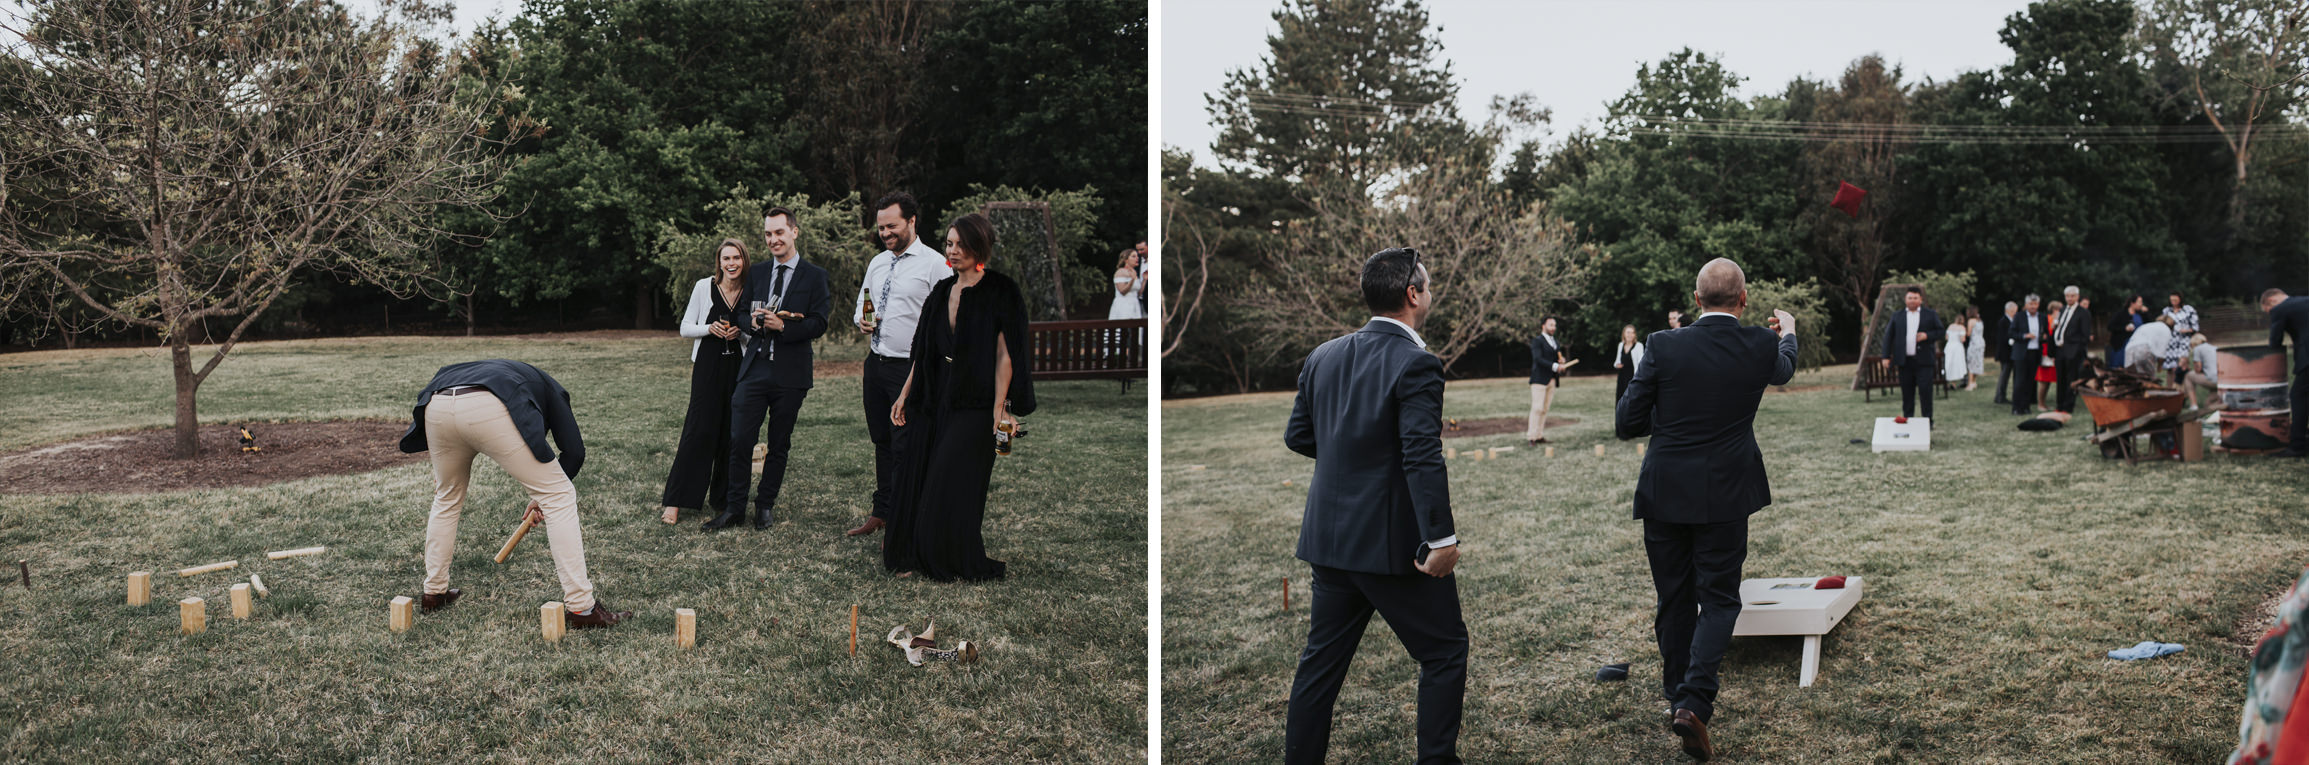 Lawn games at ceremony location